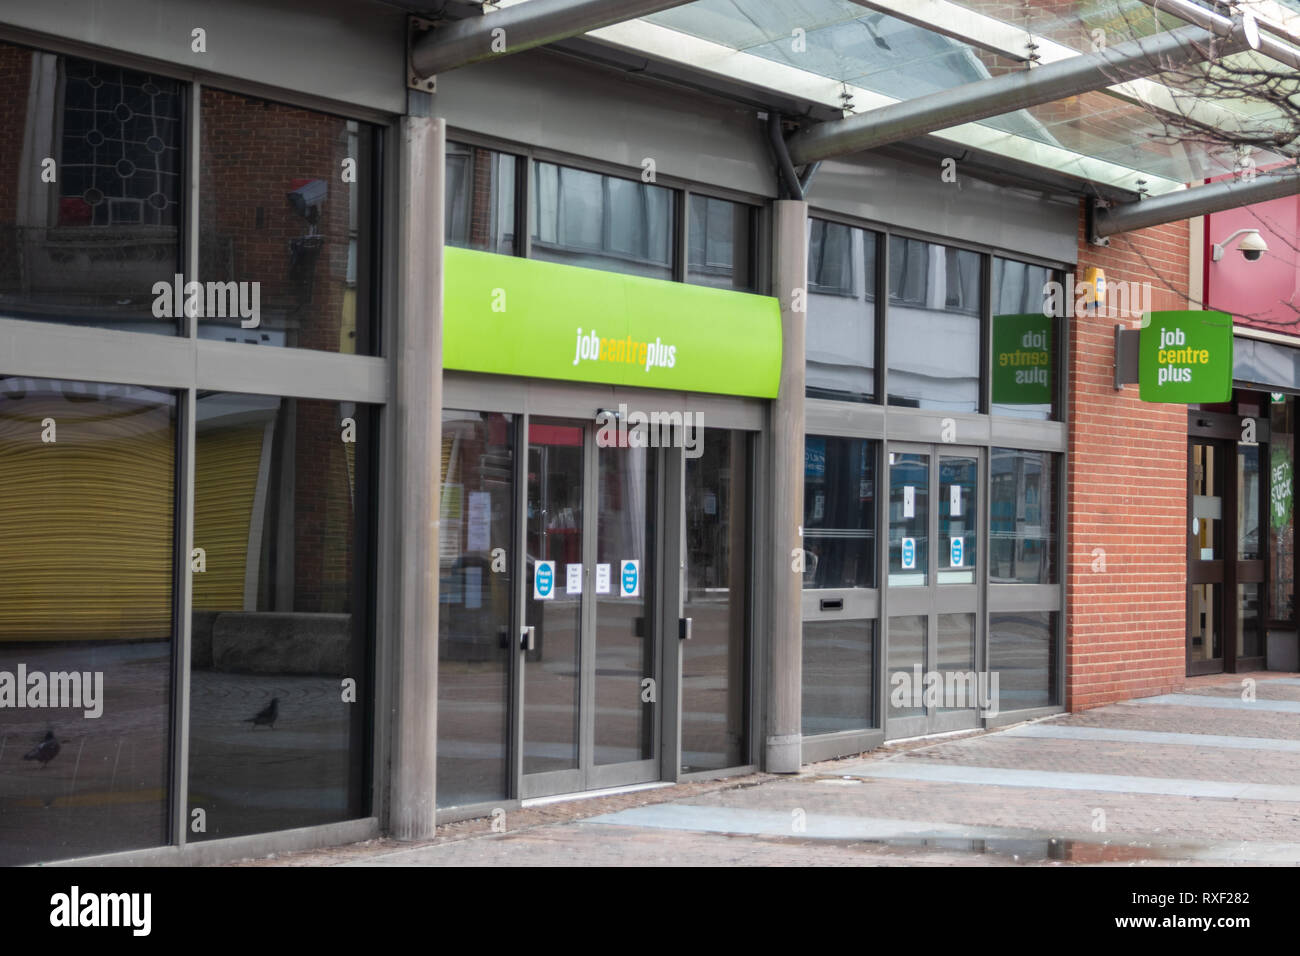 Jobcentre Plus Shop front - Stock Image